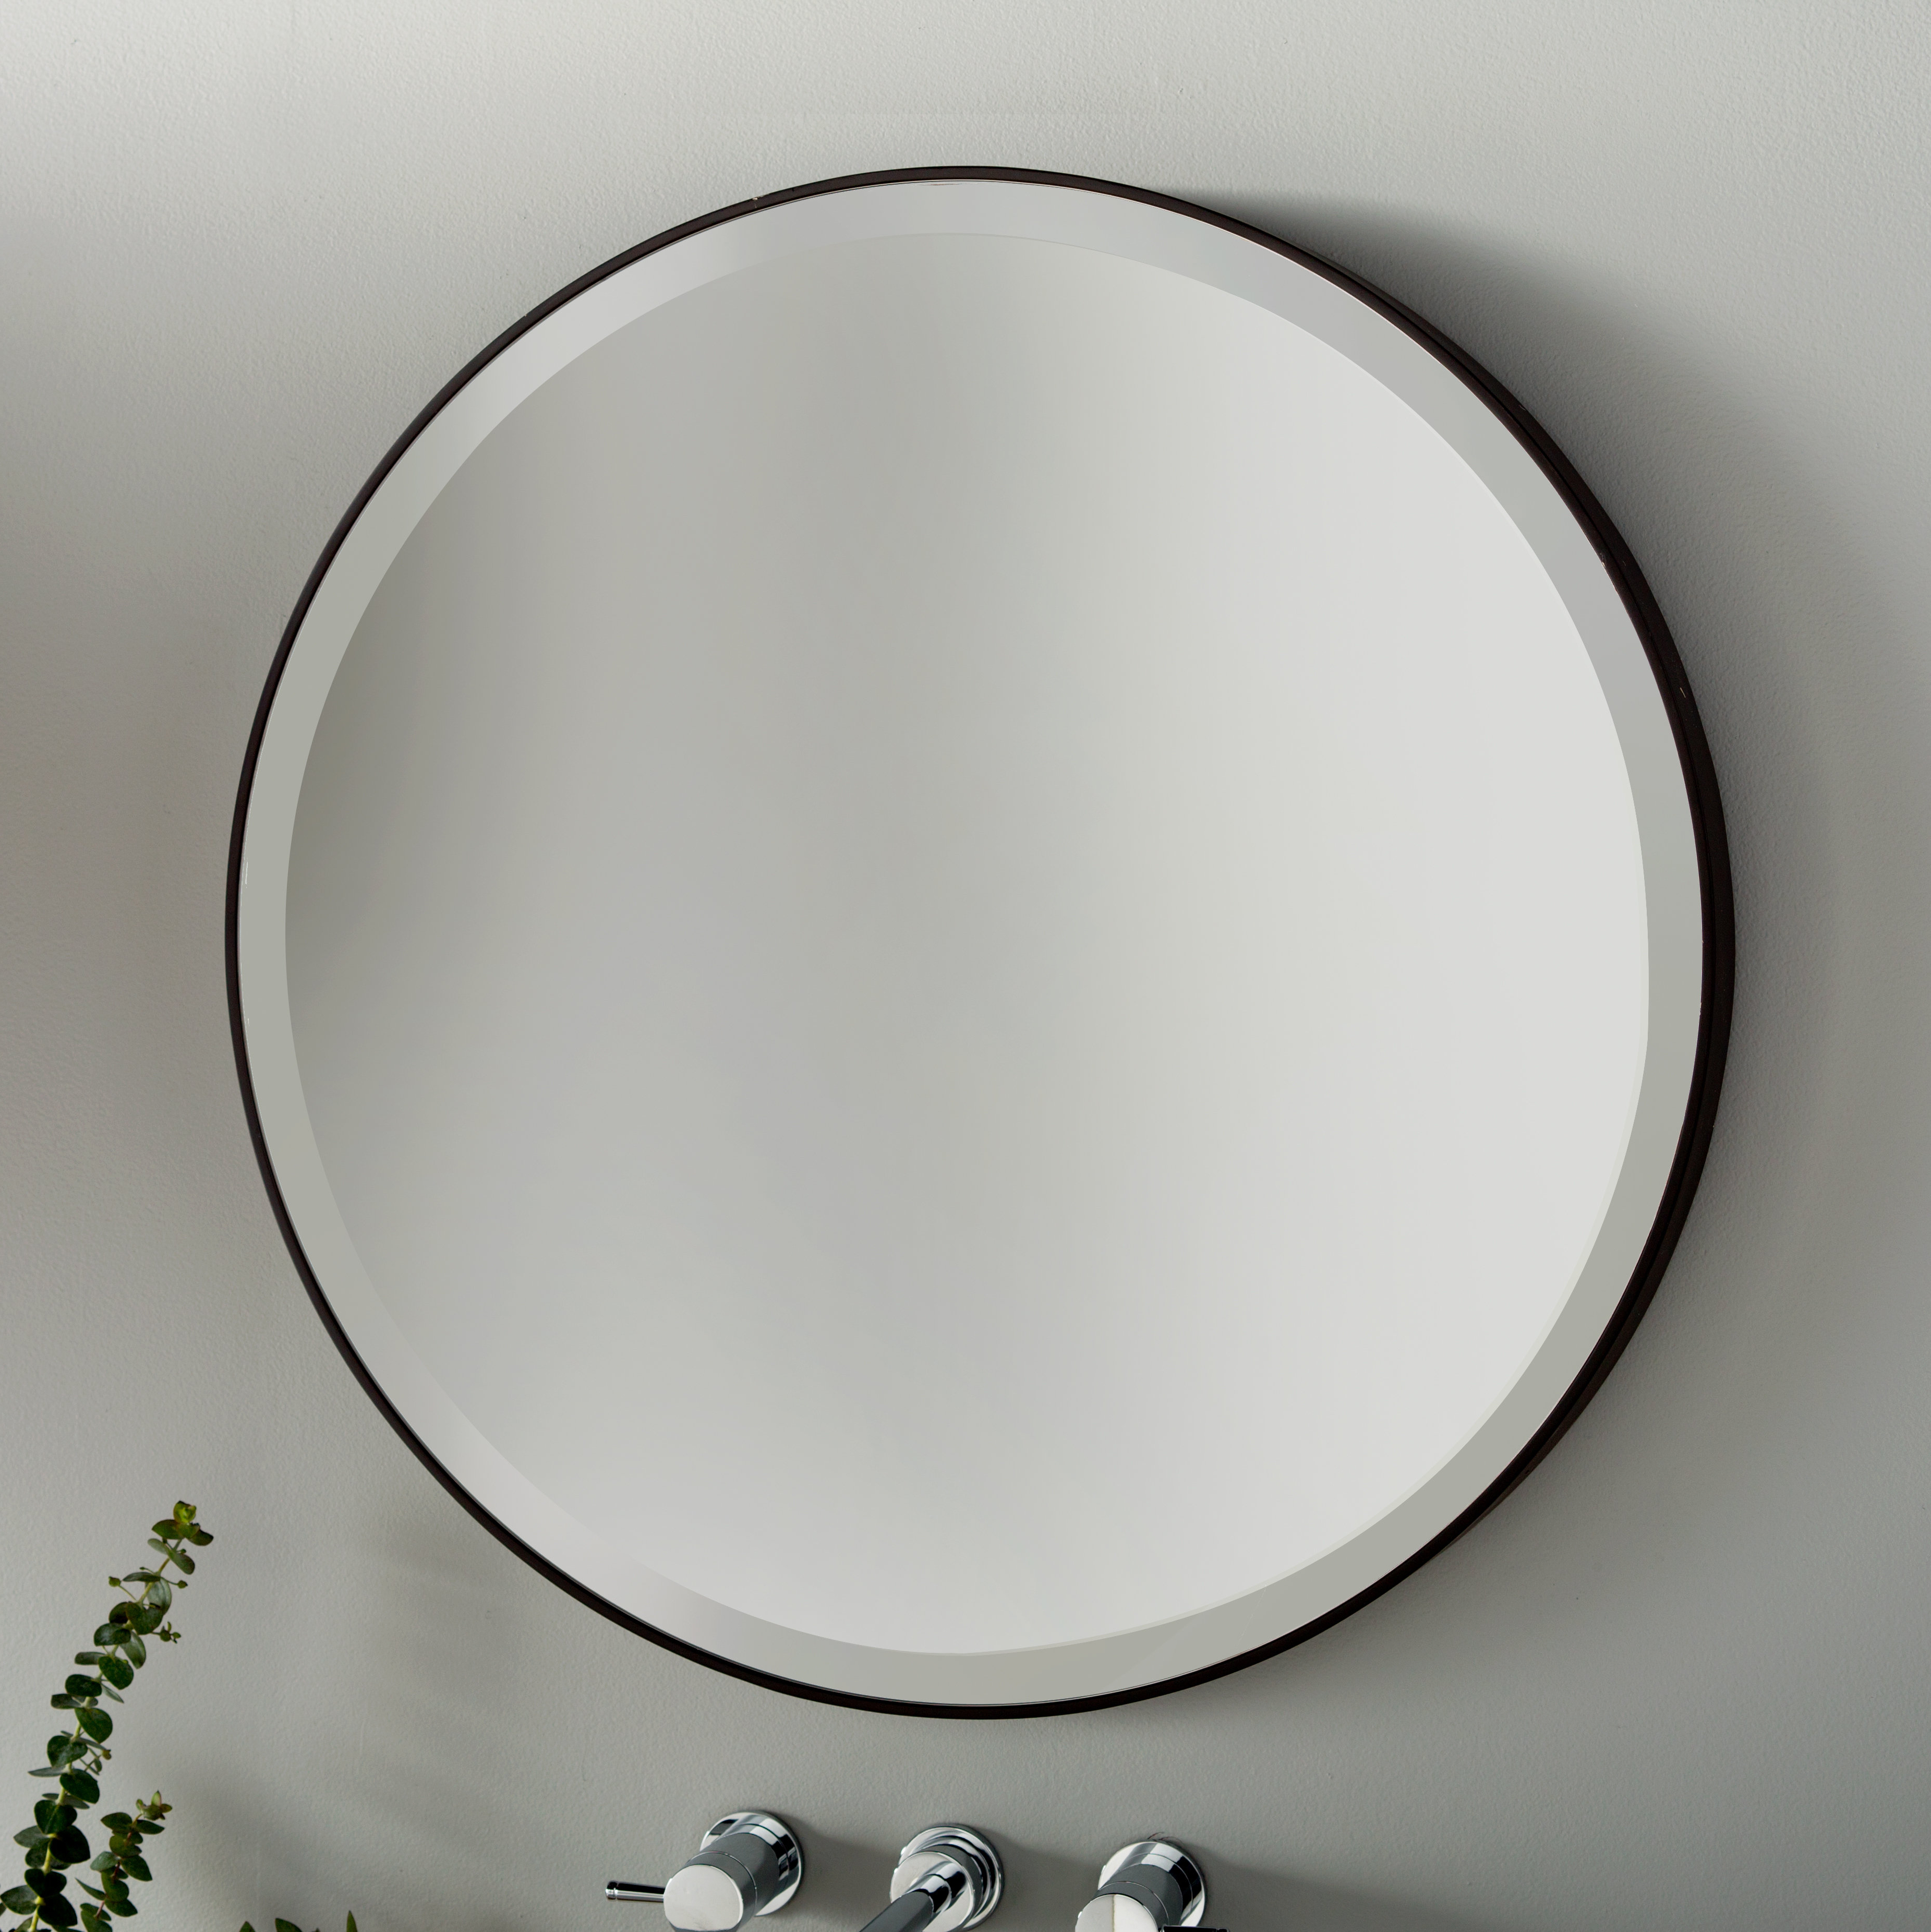 Colton Modern & Contemporary Wall Mirror Within Favorite Light Wall Mirrors (View 11 of 20)